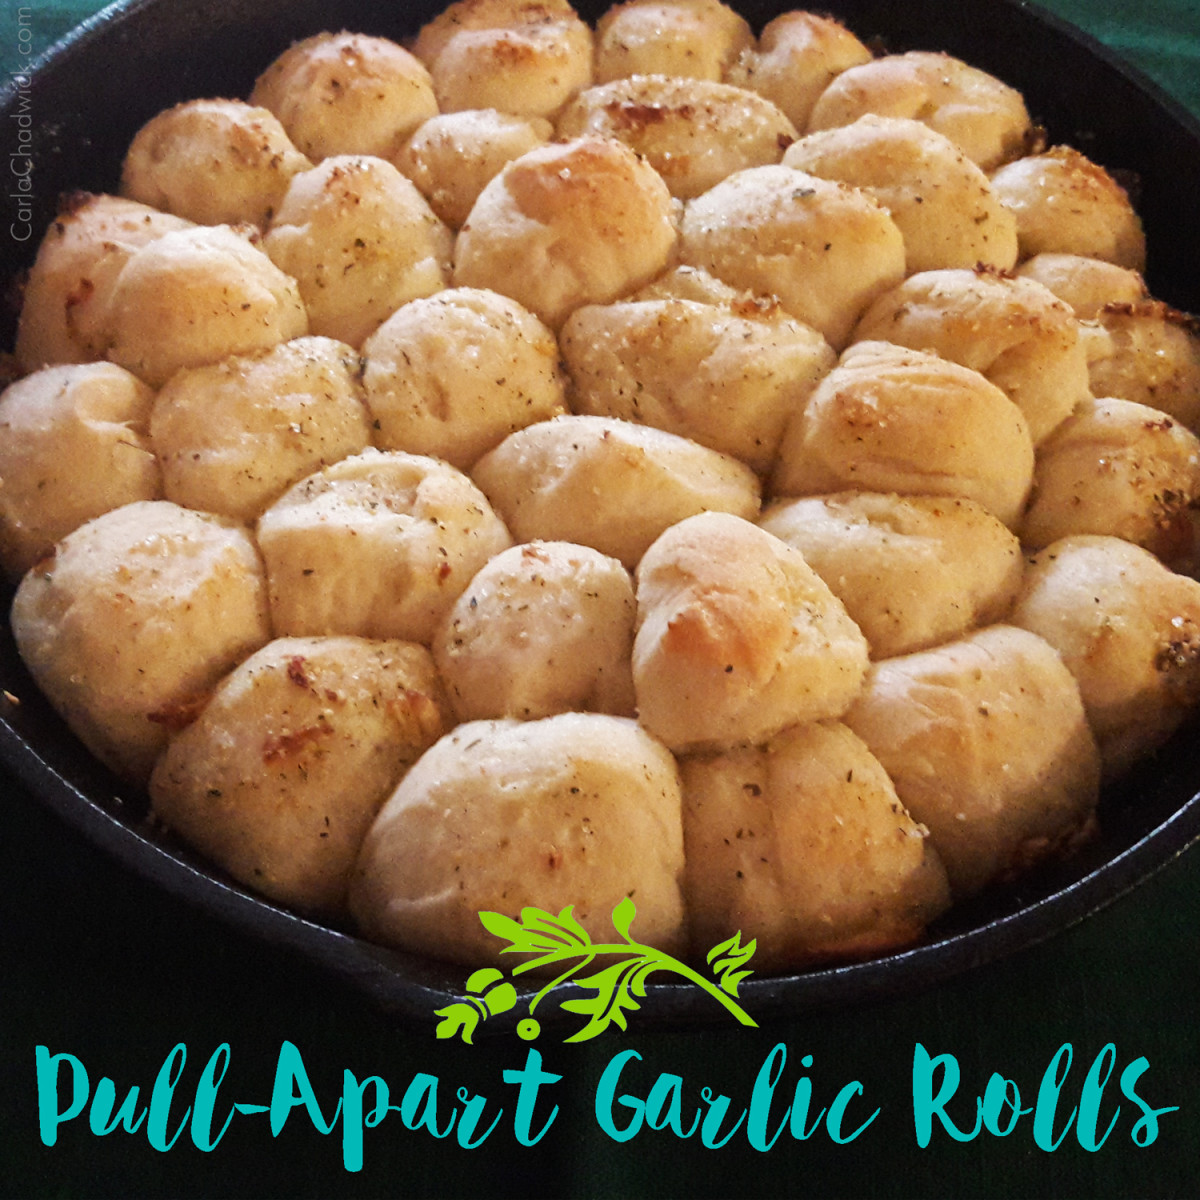 Pull-Apart Garlic Rolls Recipe